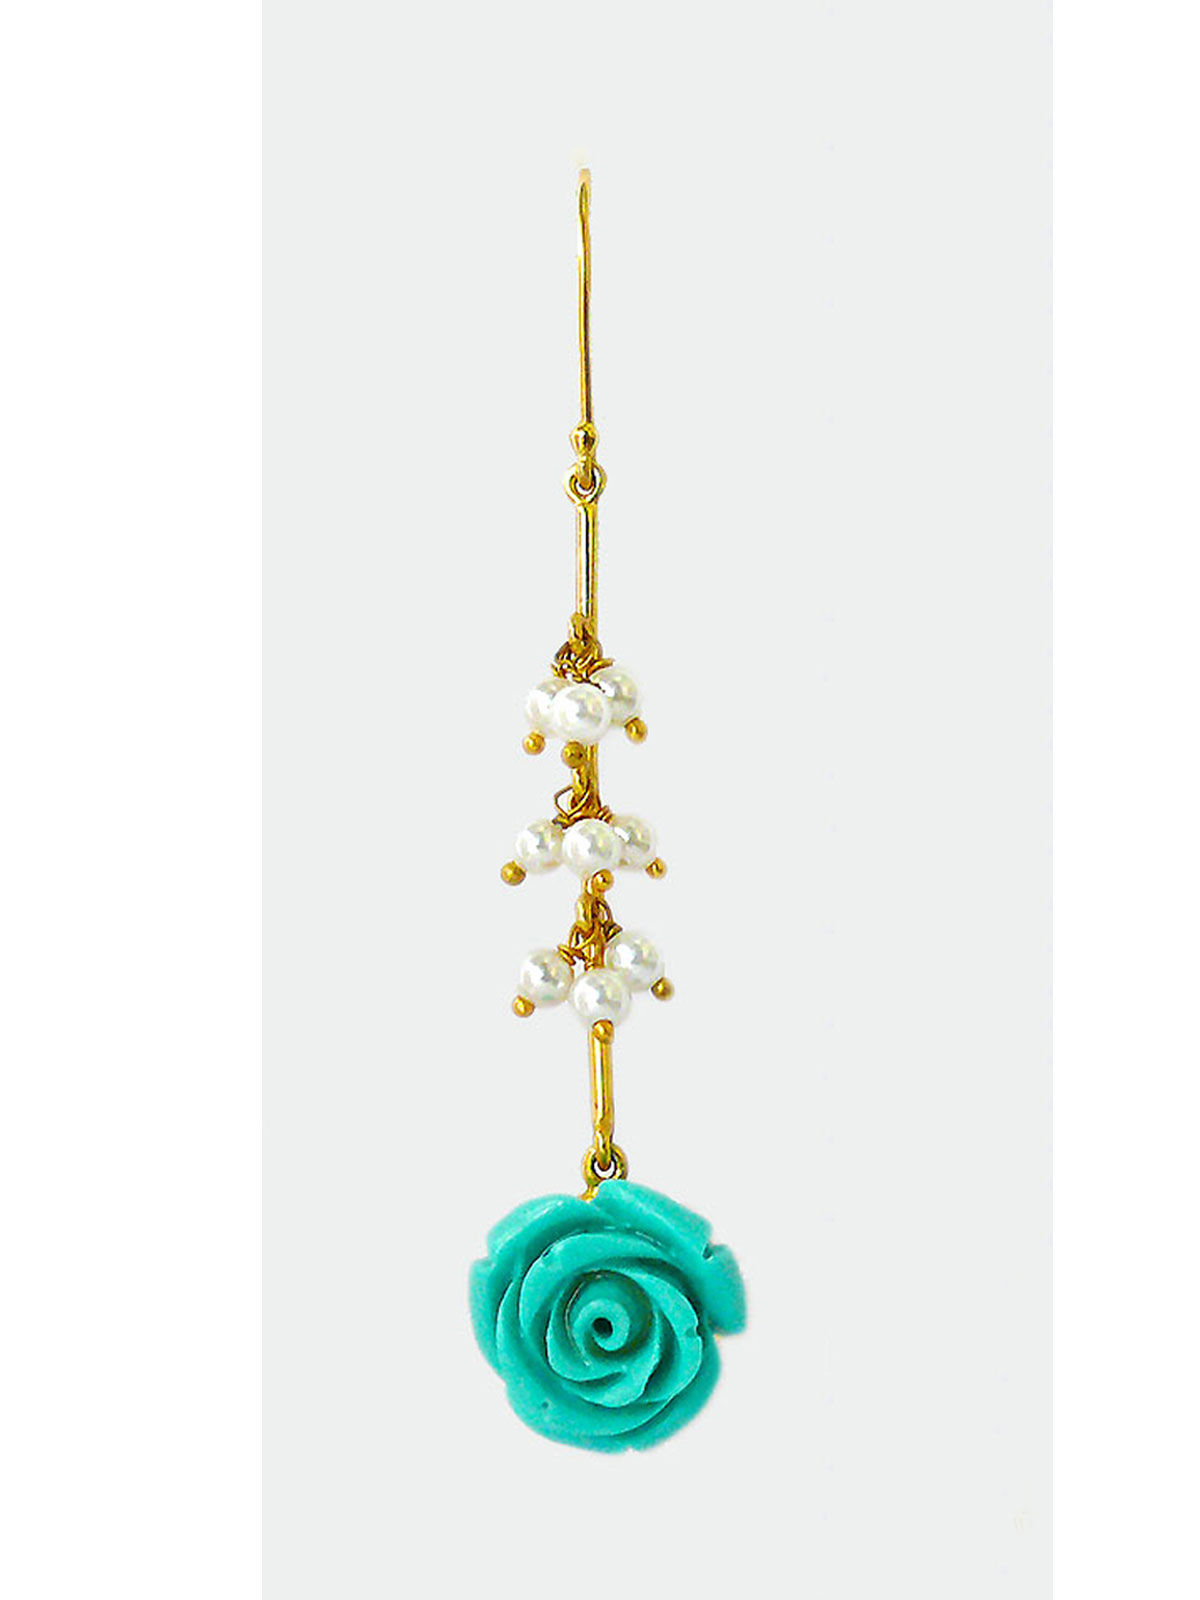 Siddhaa rose shaped golden silver long turquoise earrings